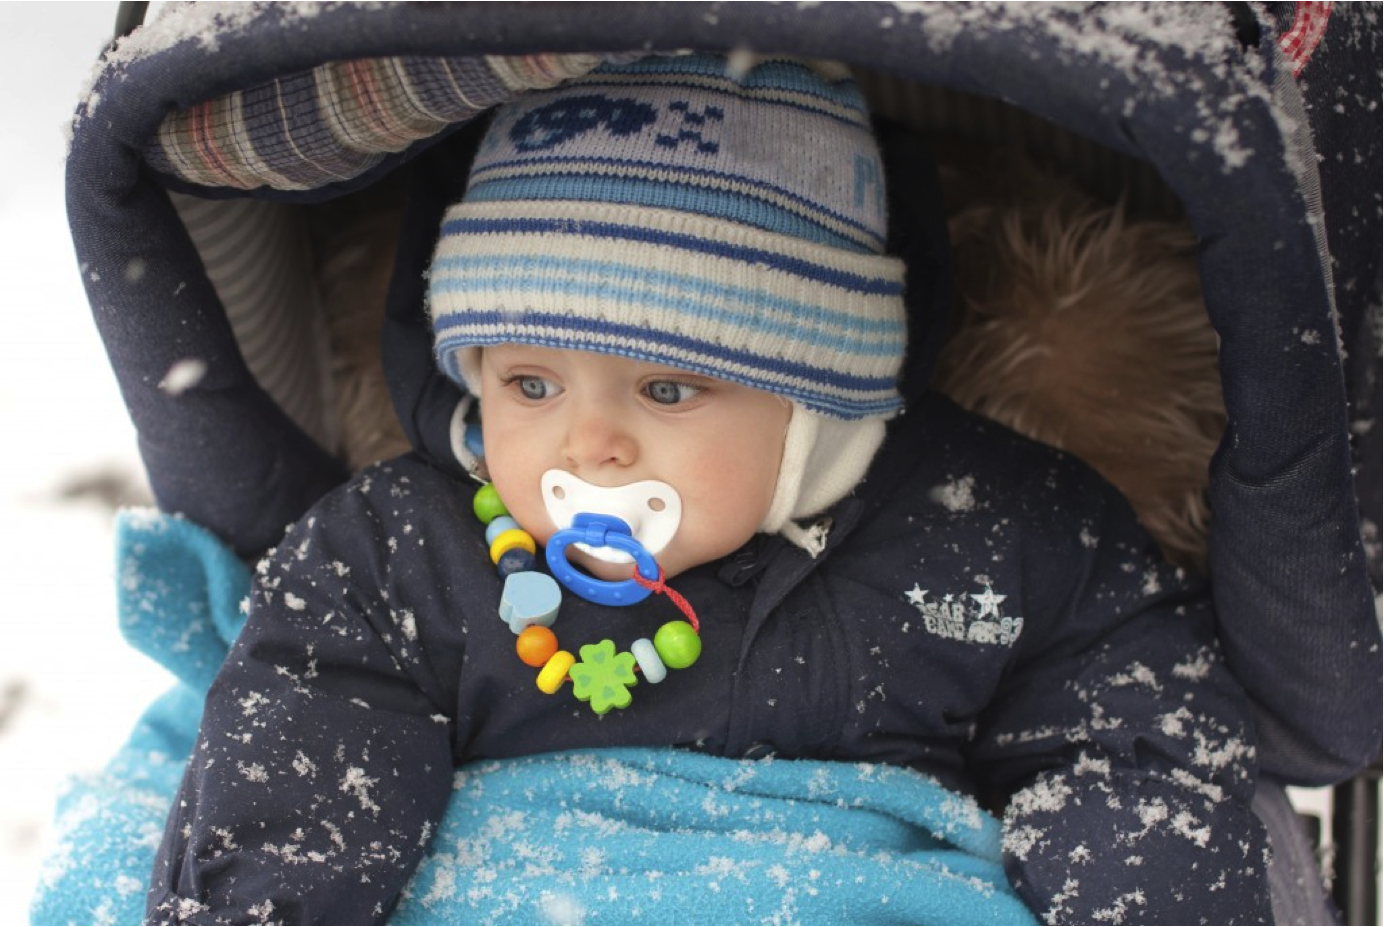 How To Dress And Care For Baby In The Cold Baby Tips Baby Winter Baby In Snow Winter Baby Clothes